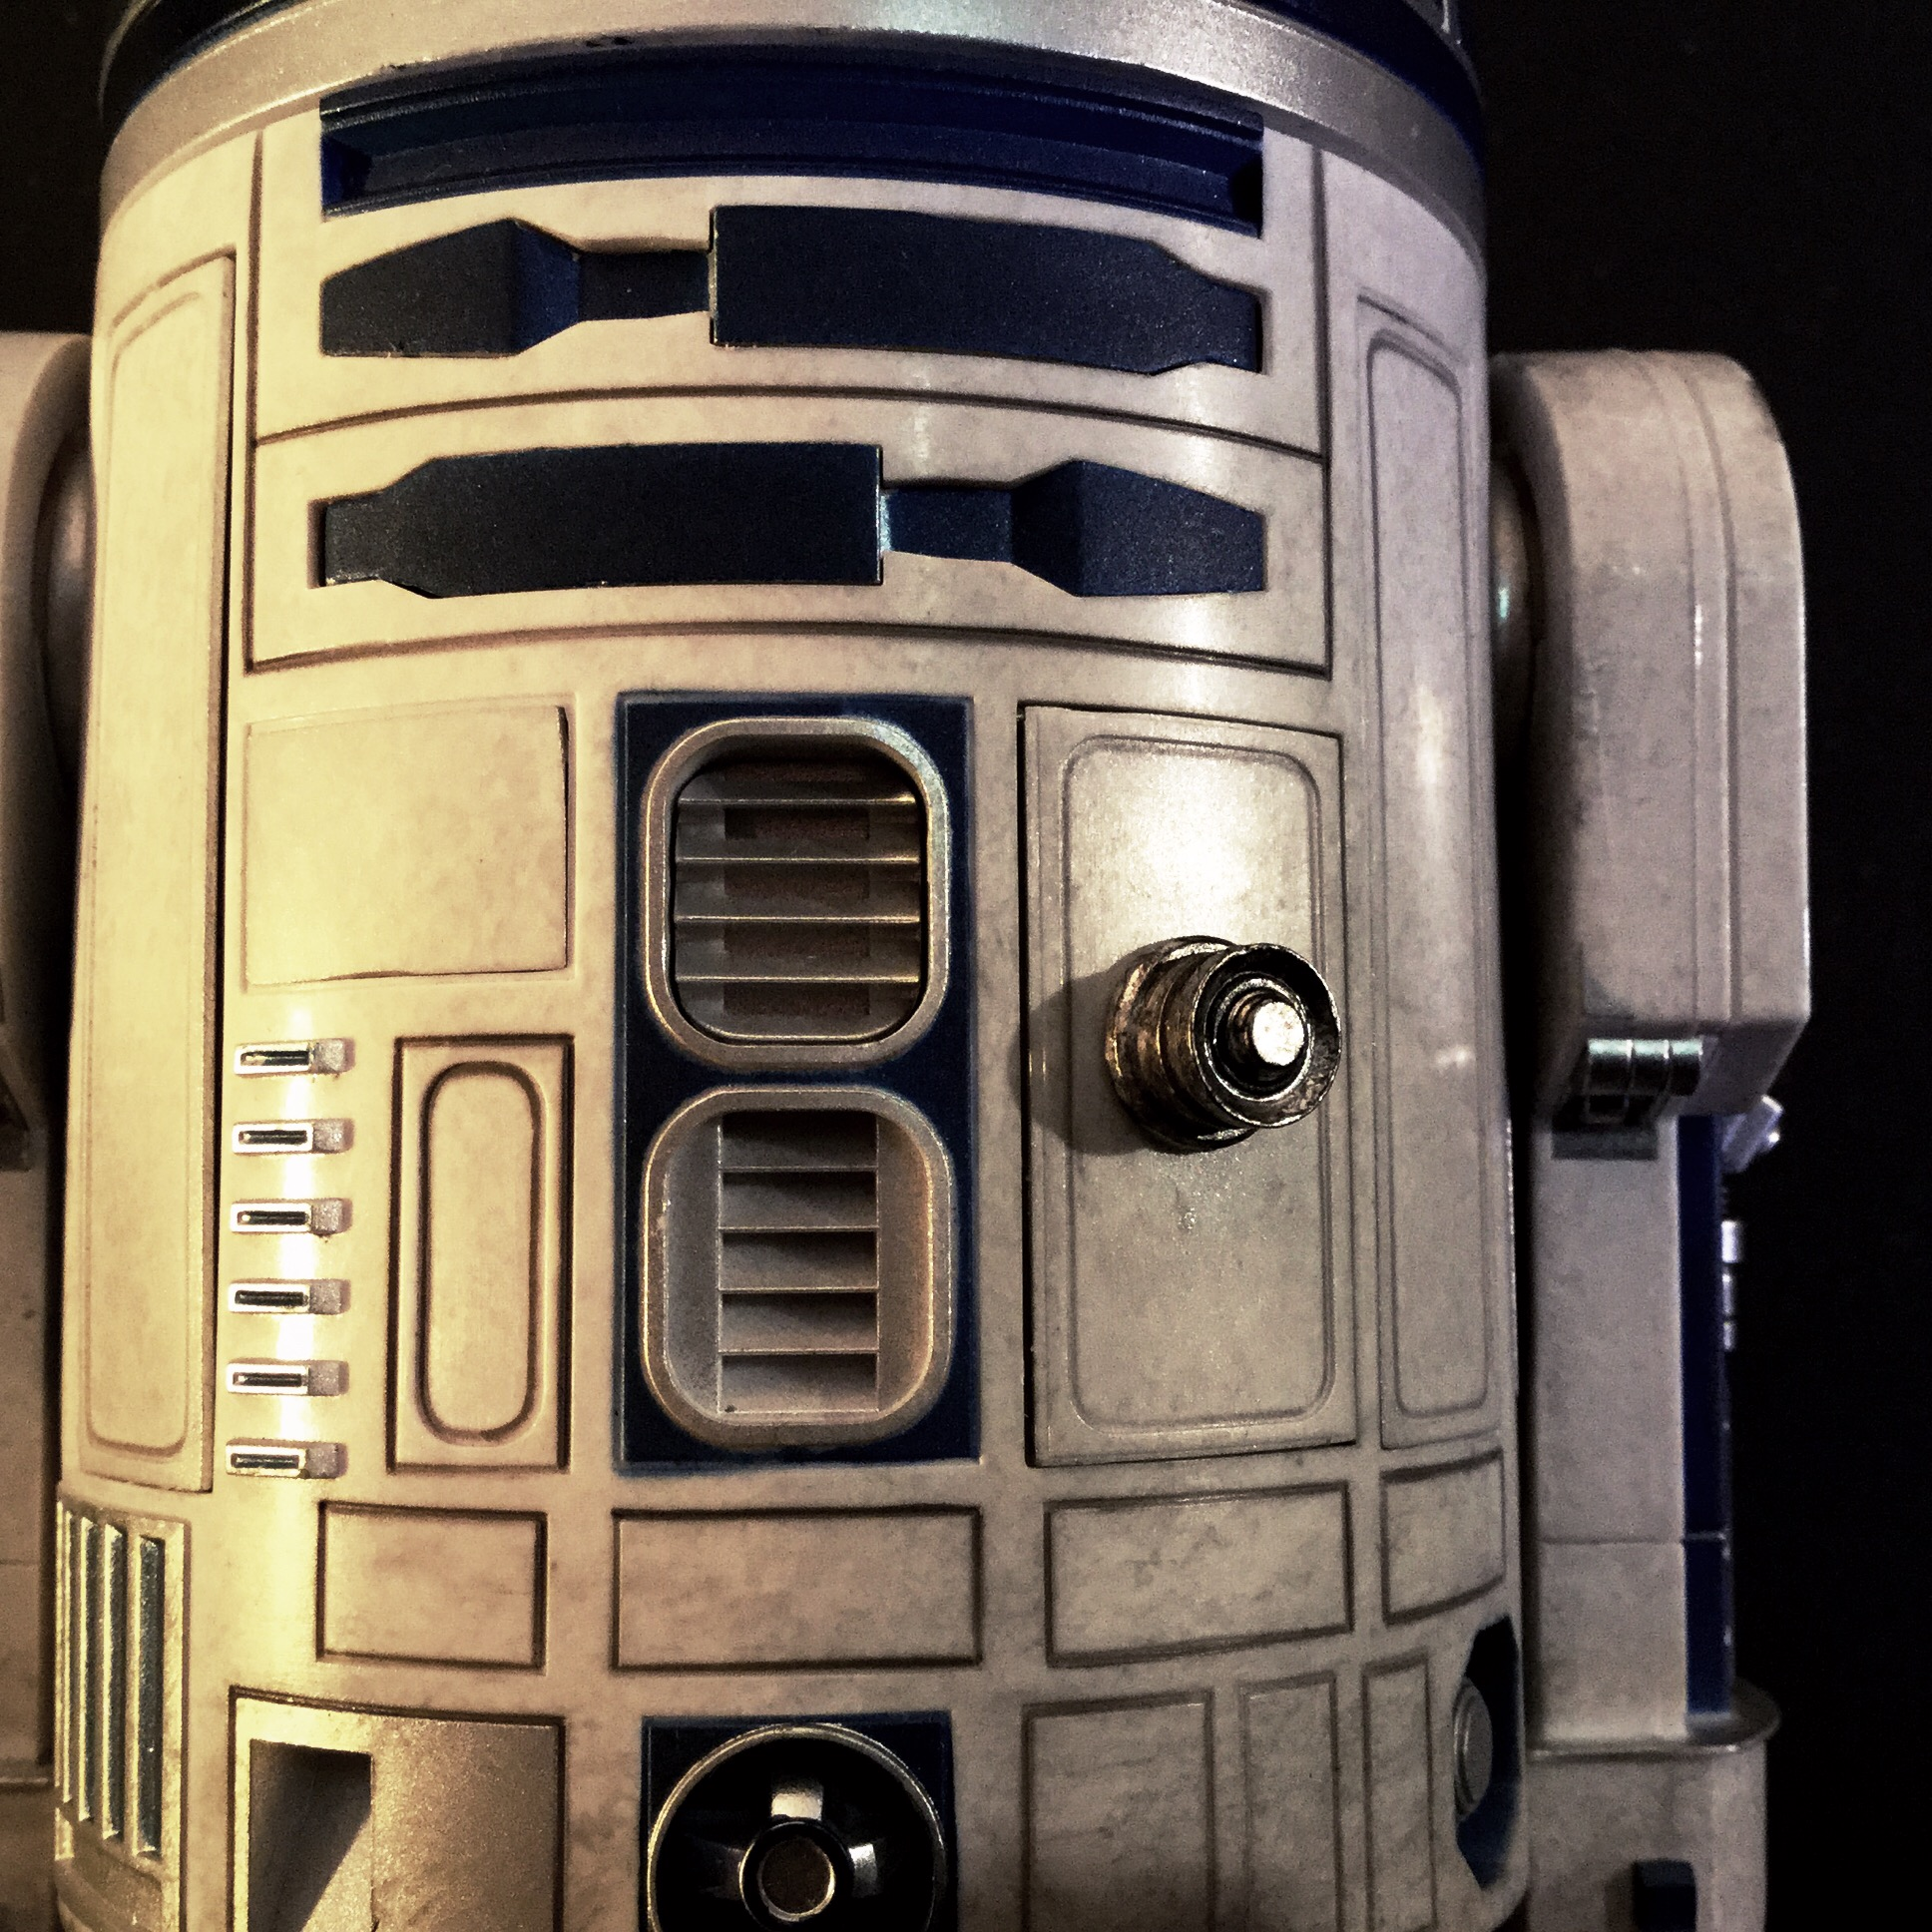 [REVIEW] Star Wars : R2-D2 Deluxe (Sideshow) 15824129493_1050f2a845_o